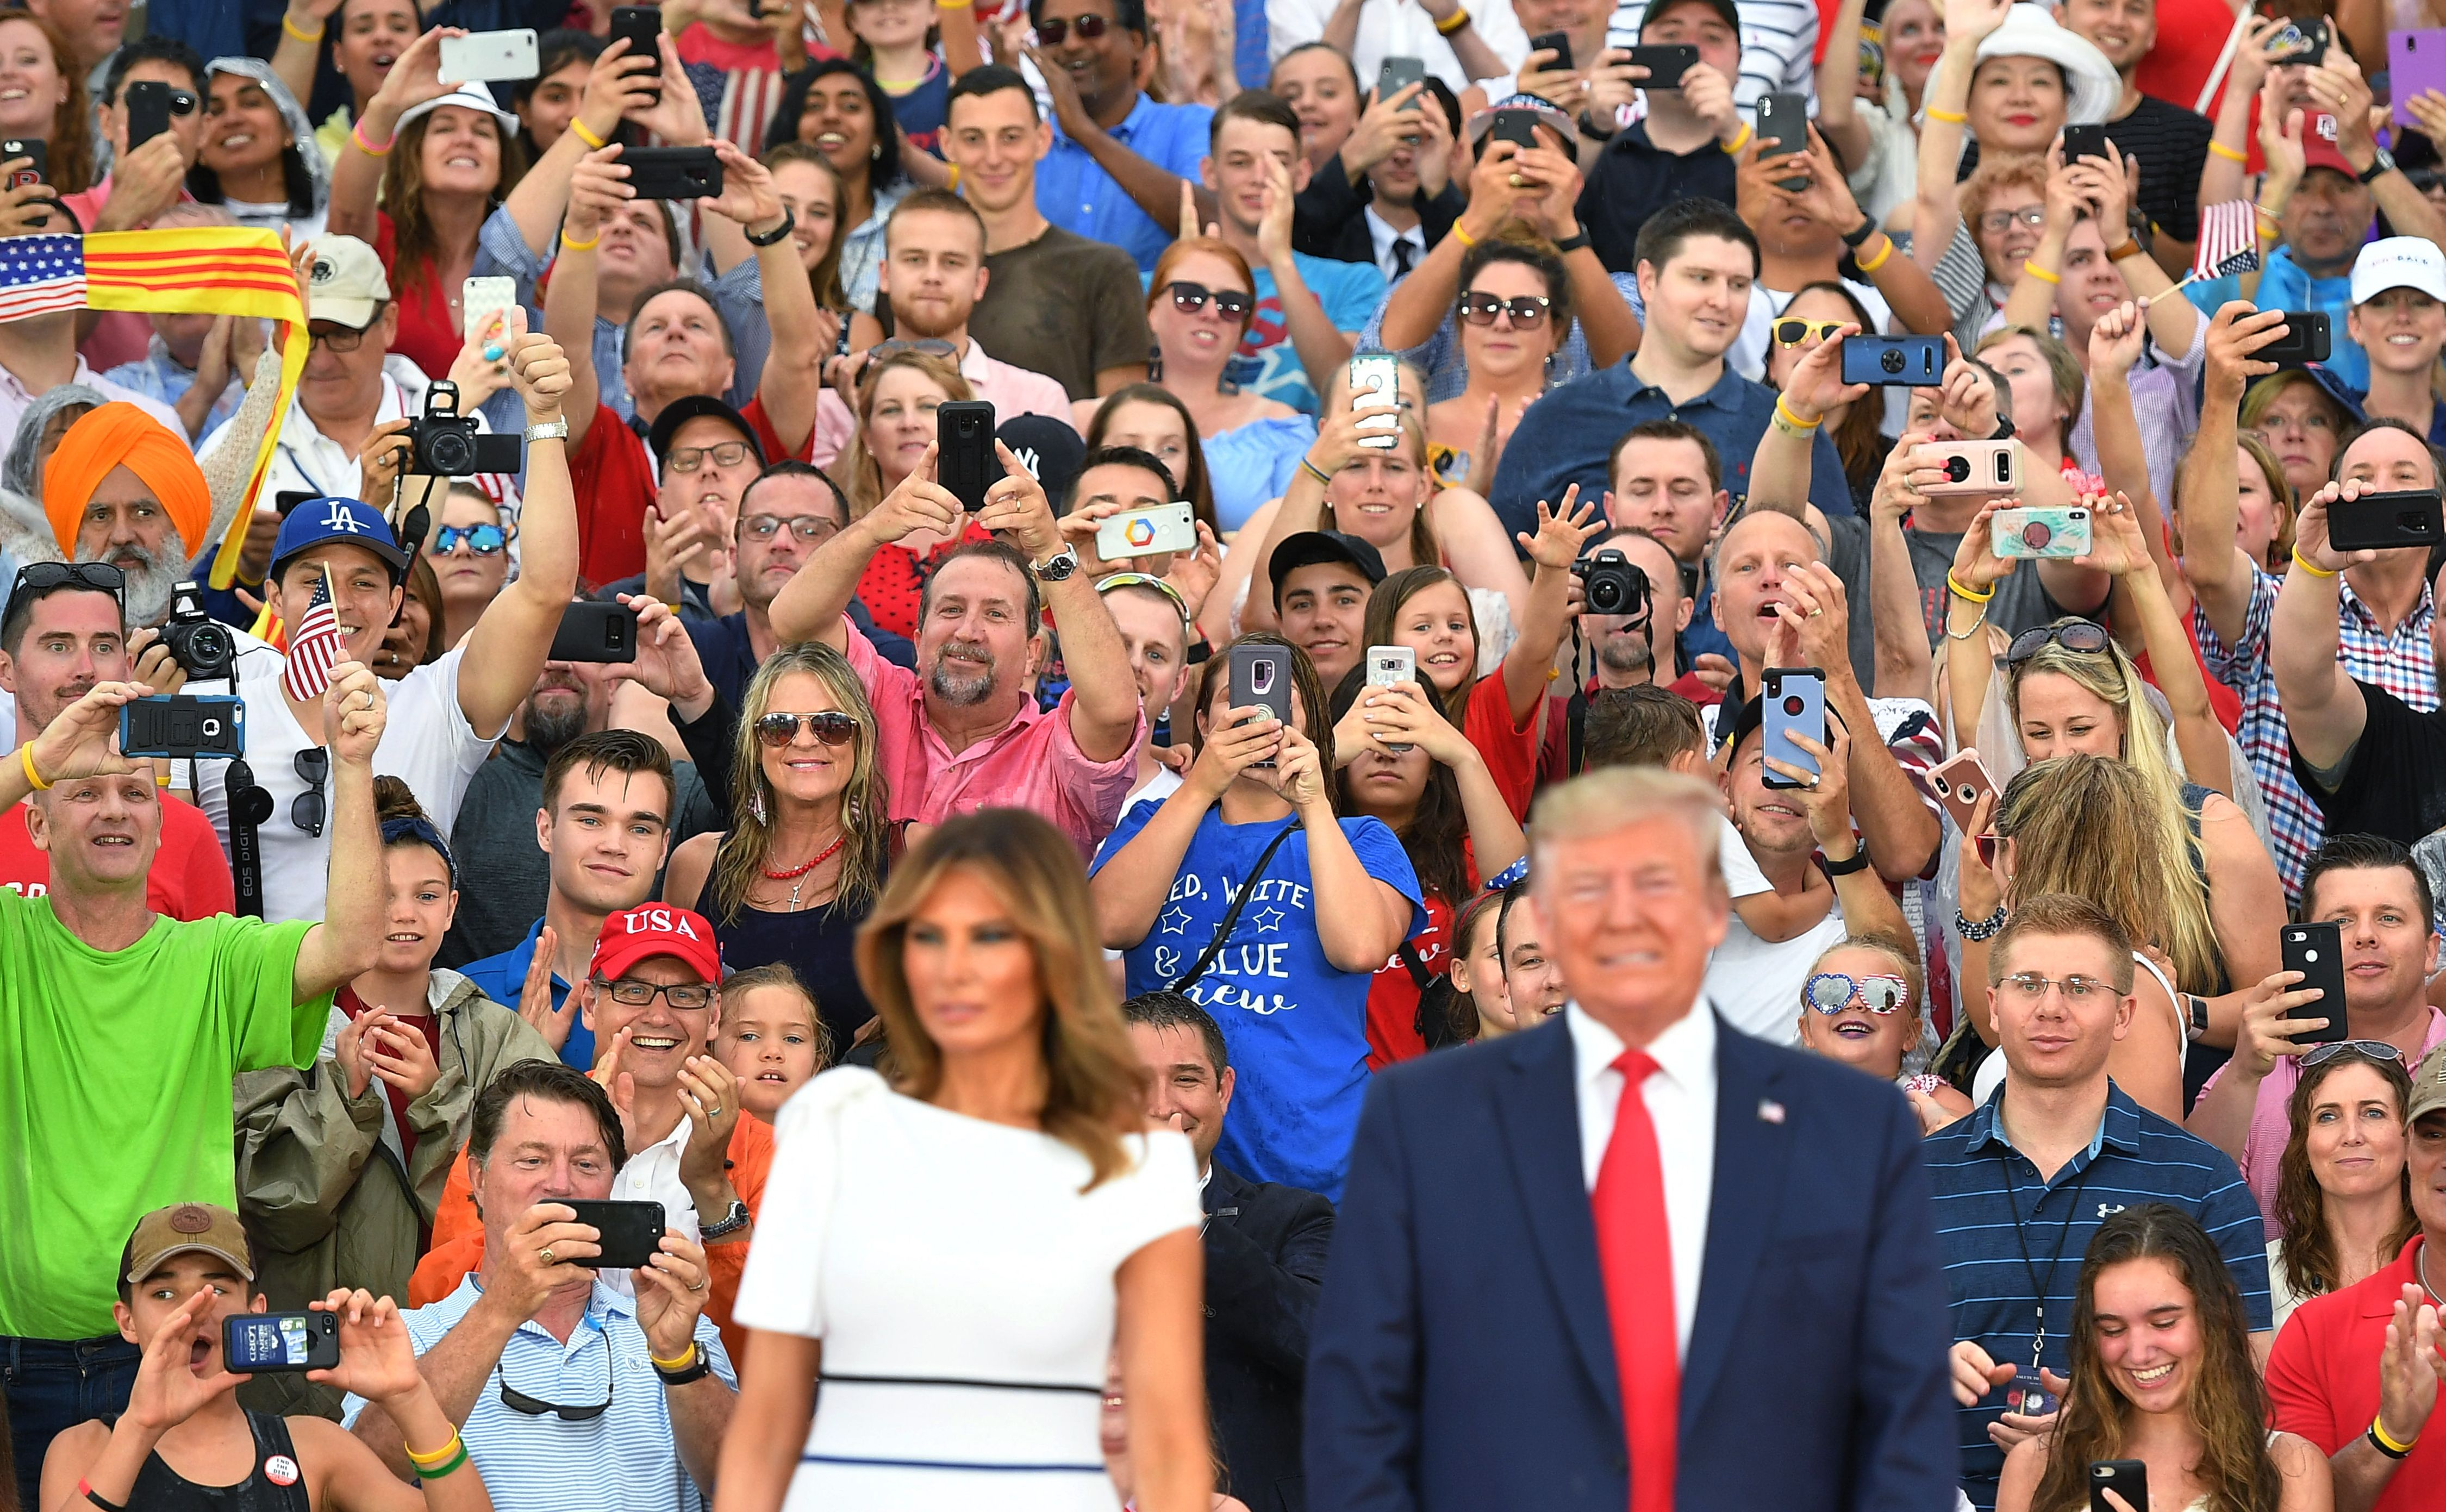 """Guest cheer as US President Donald Trump and First Lady Melania Trump arrive for the """"Salute to America"""" Fourth of July event at the Lincoln Memorial in Washington, DC, July 4, 2019. (Photo by MANDEL NGAN / AFP)        (Photo credit should read MANDEL NGAN/AFP/Getty Images)"""